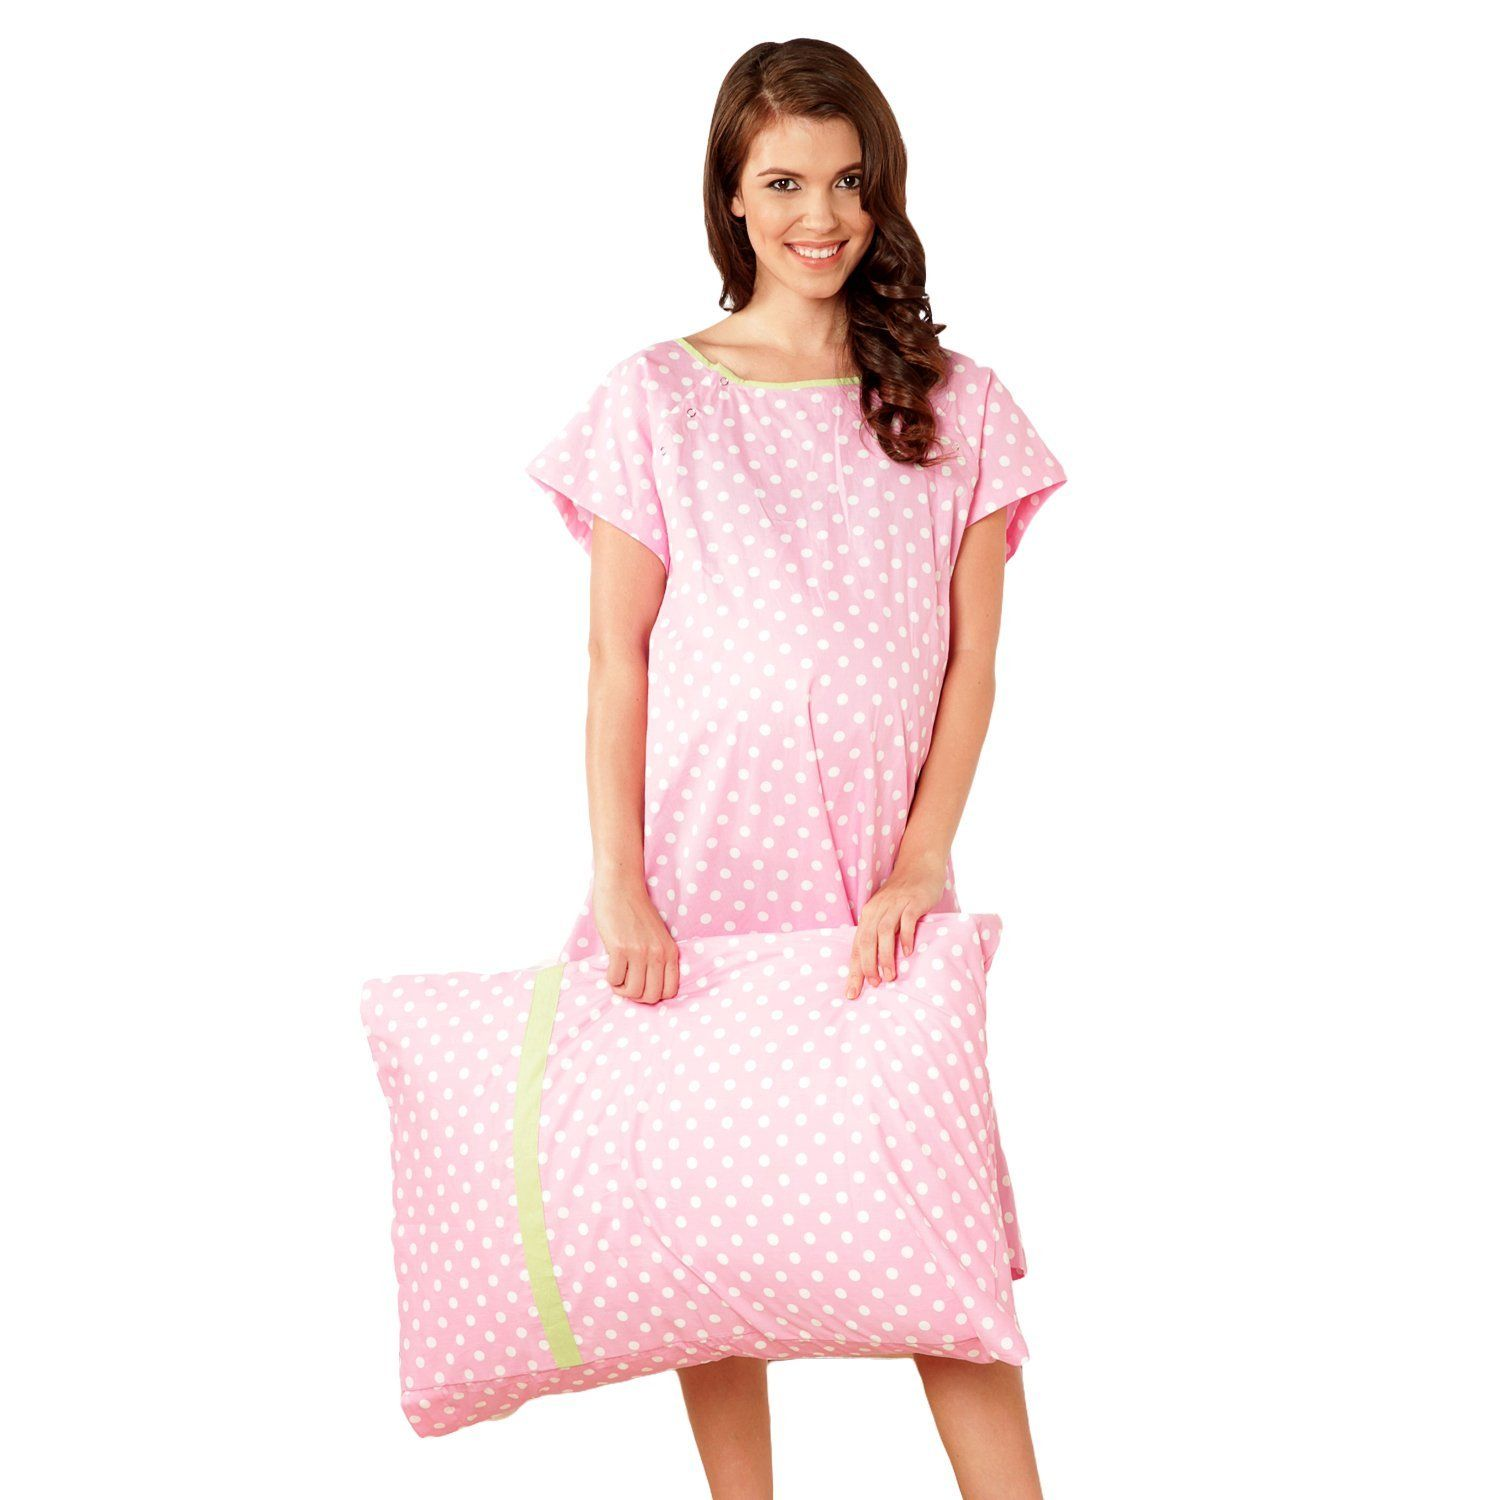 770544a42de28 Gownies - Delivery Maternity Hospital Gown Labor Kit at Amazon Women's  Clothing store: